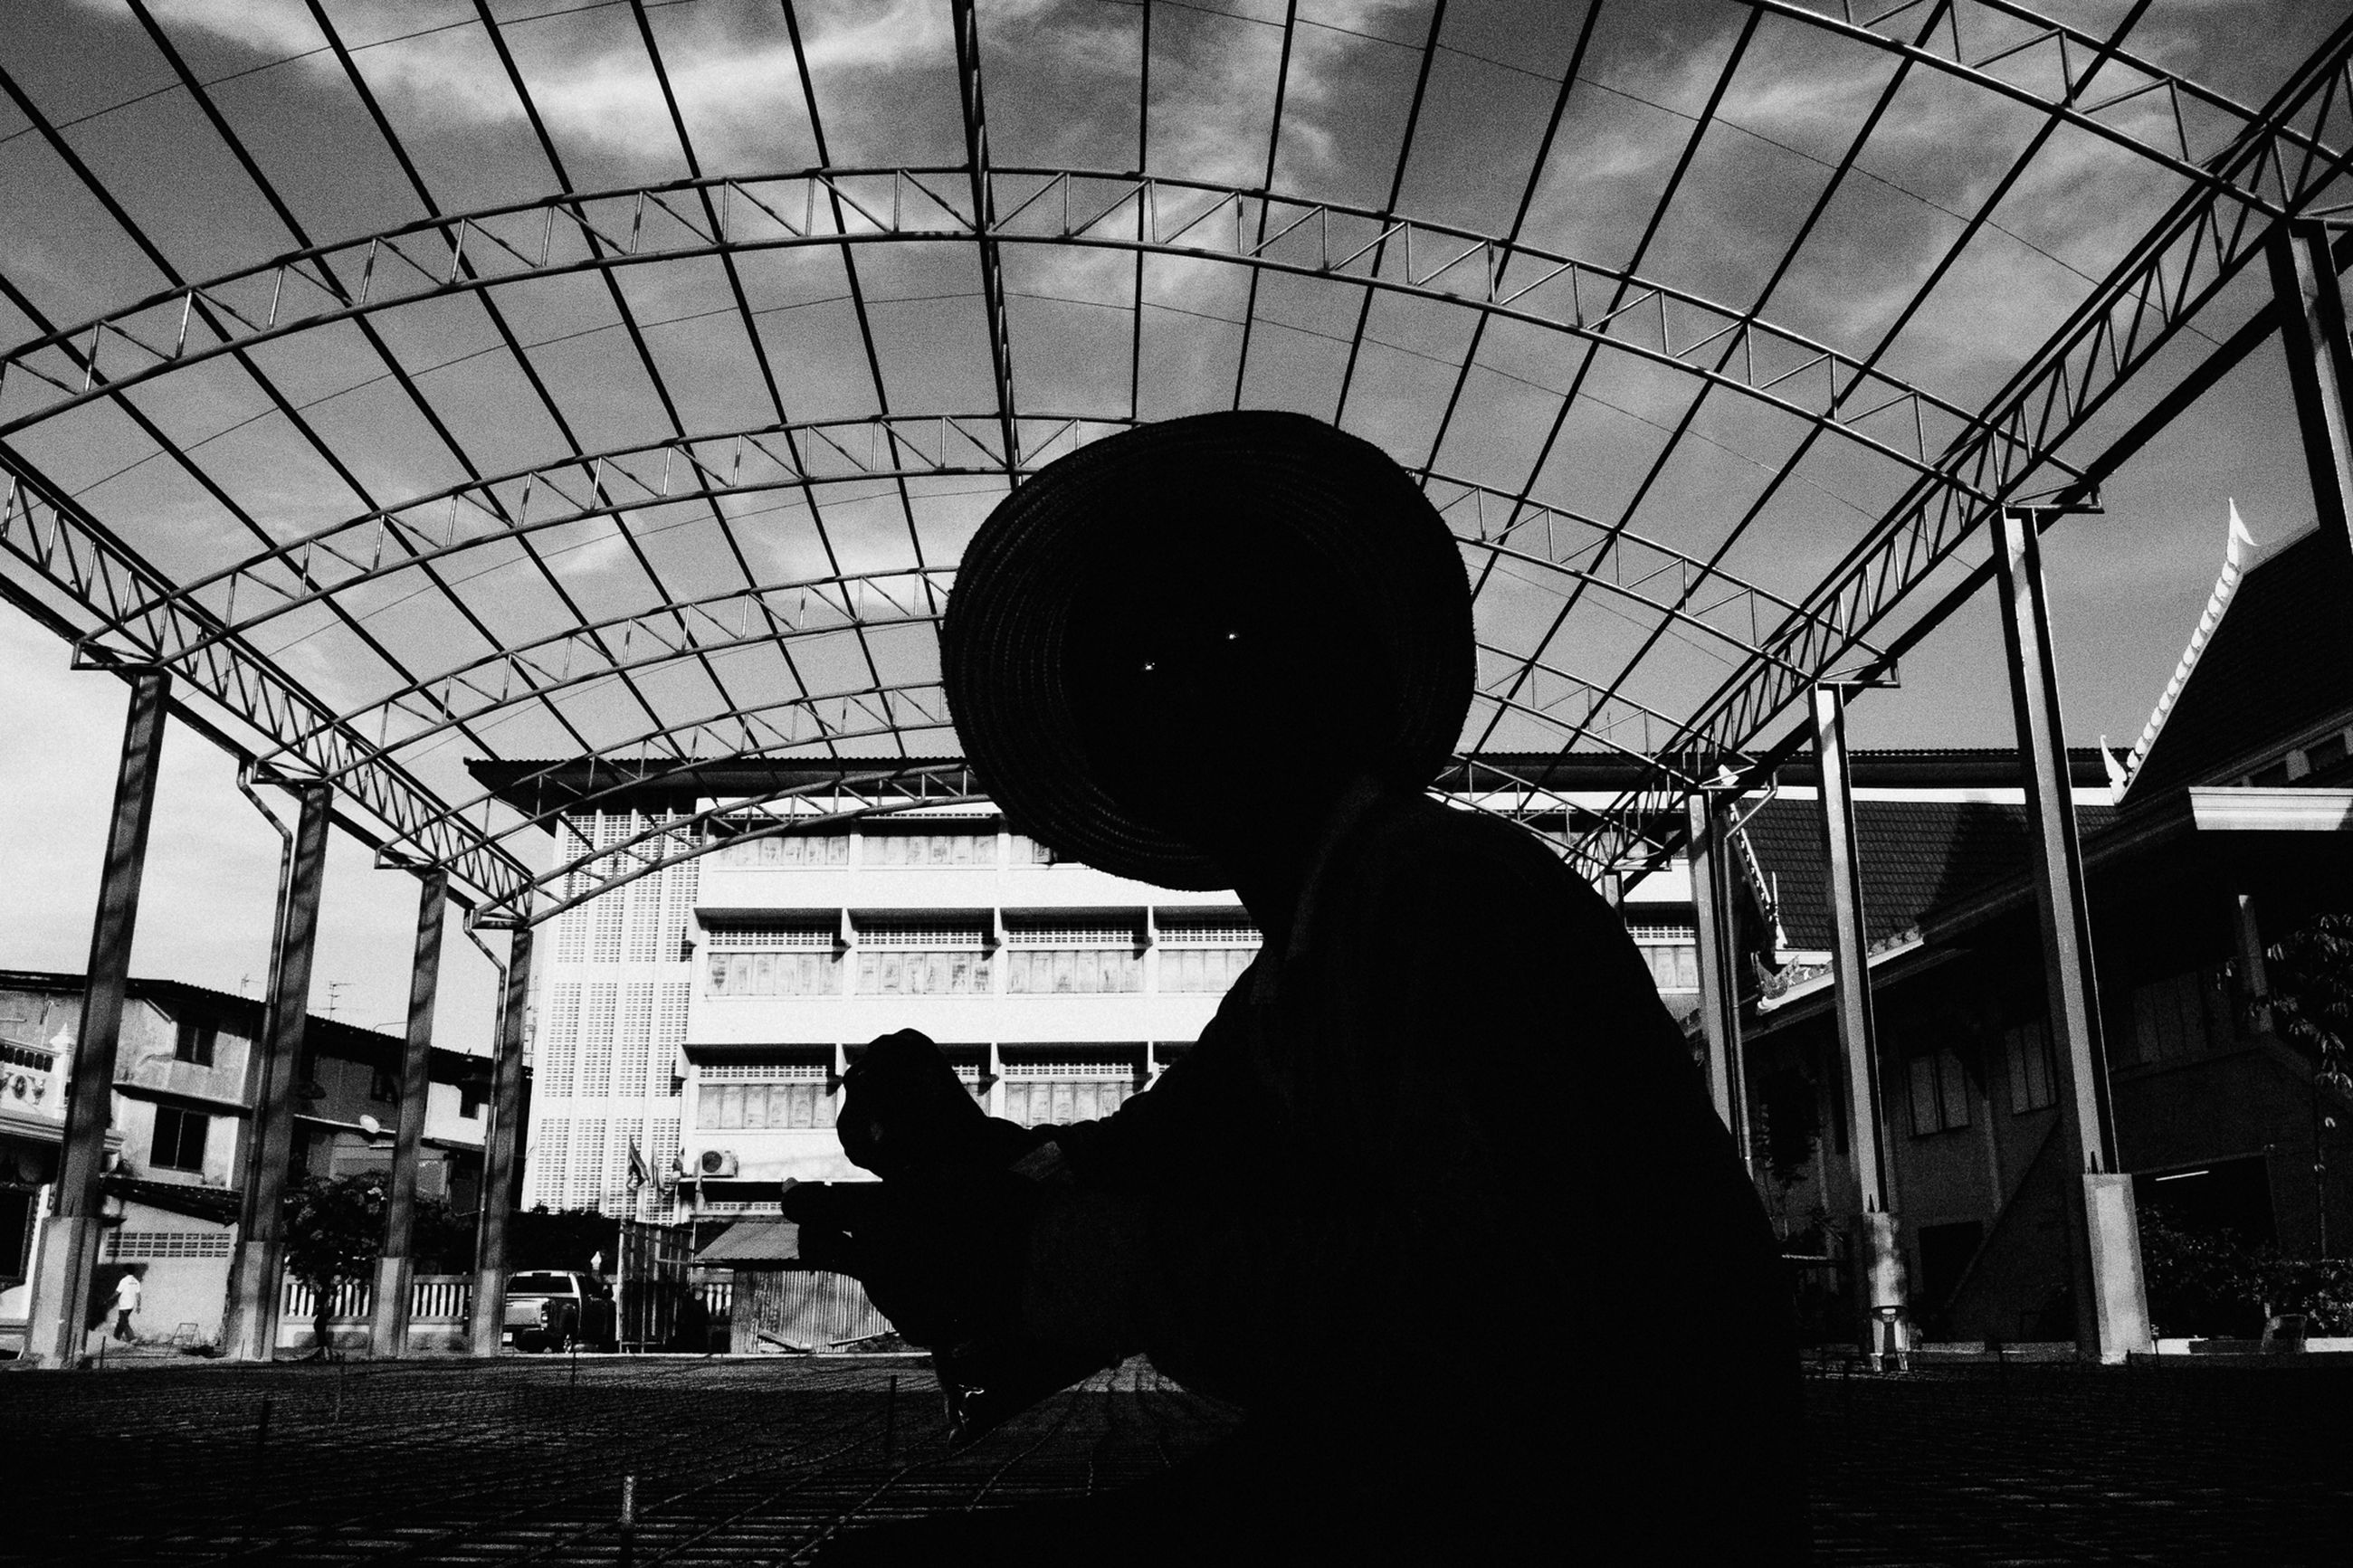 indoors, men, built structure, architecture, silhouette, city, day, sky, in front of